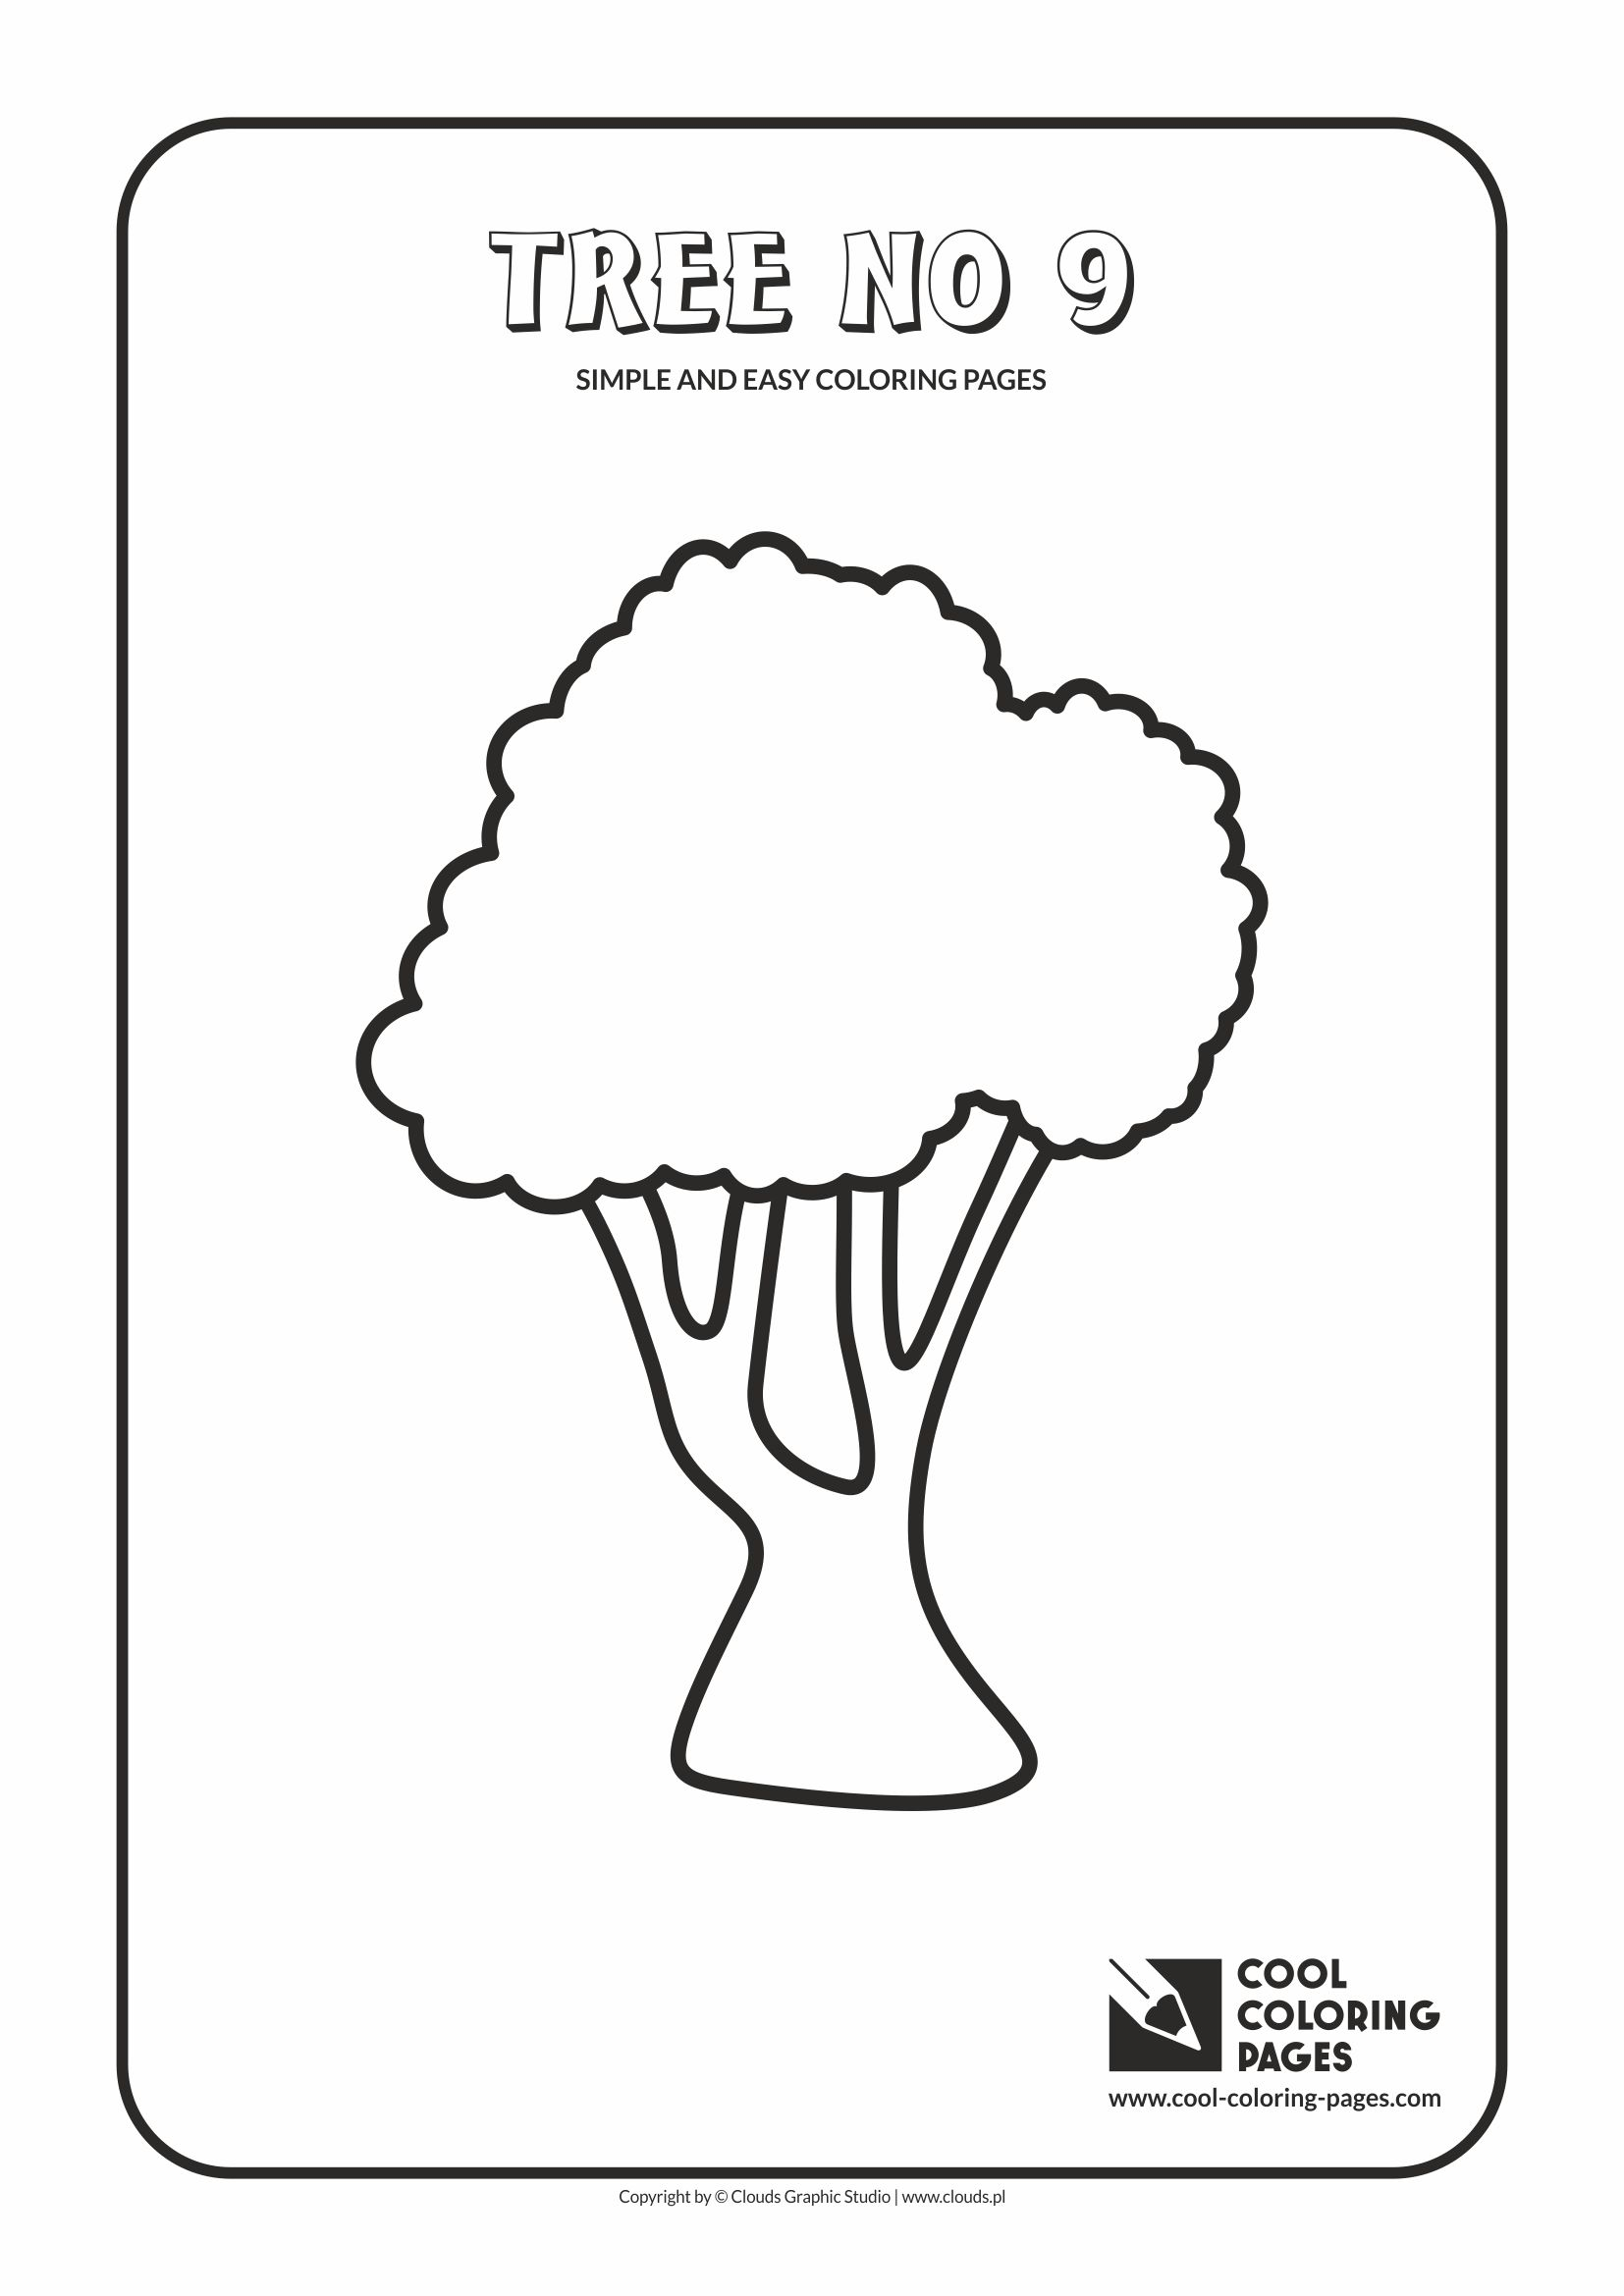 Simple and easy coloring pages for toddlers - Tree no 9